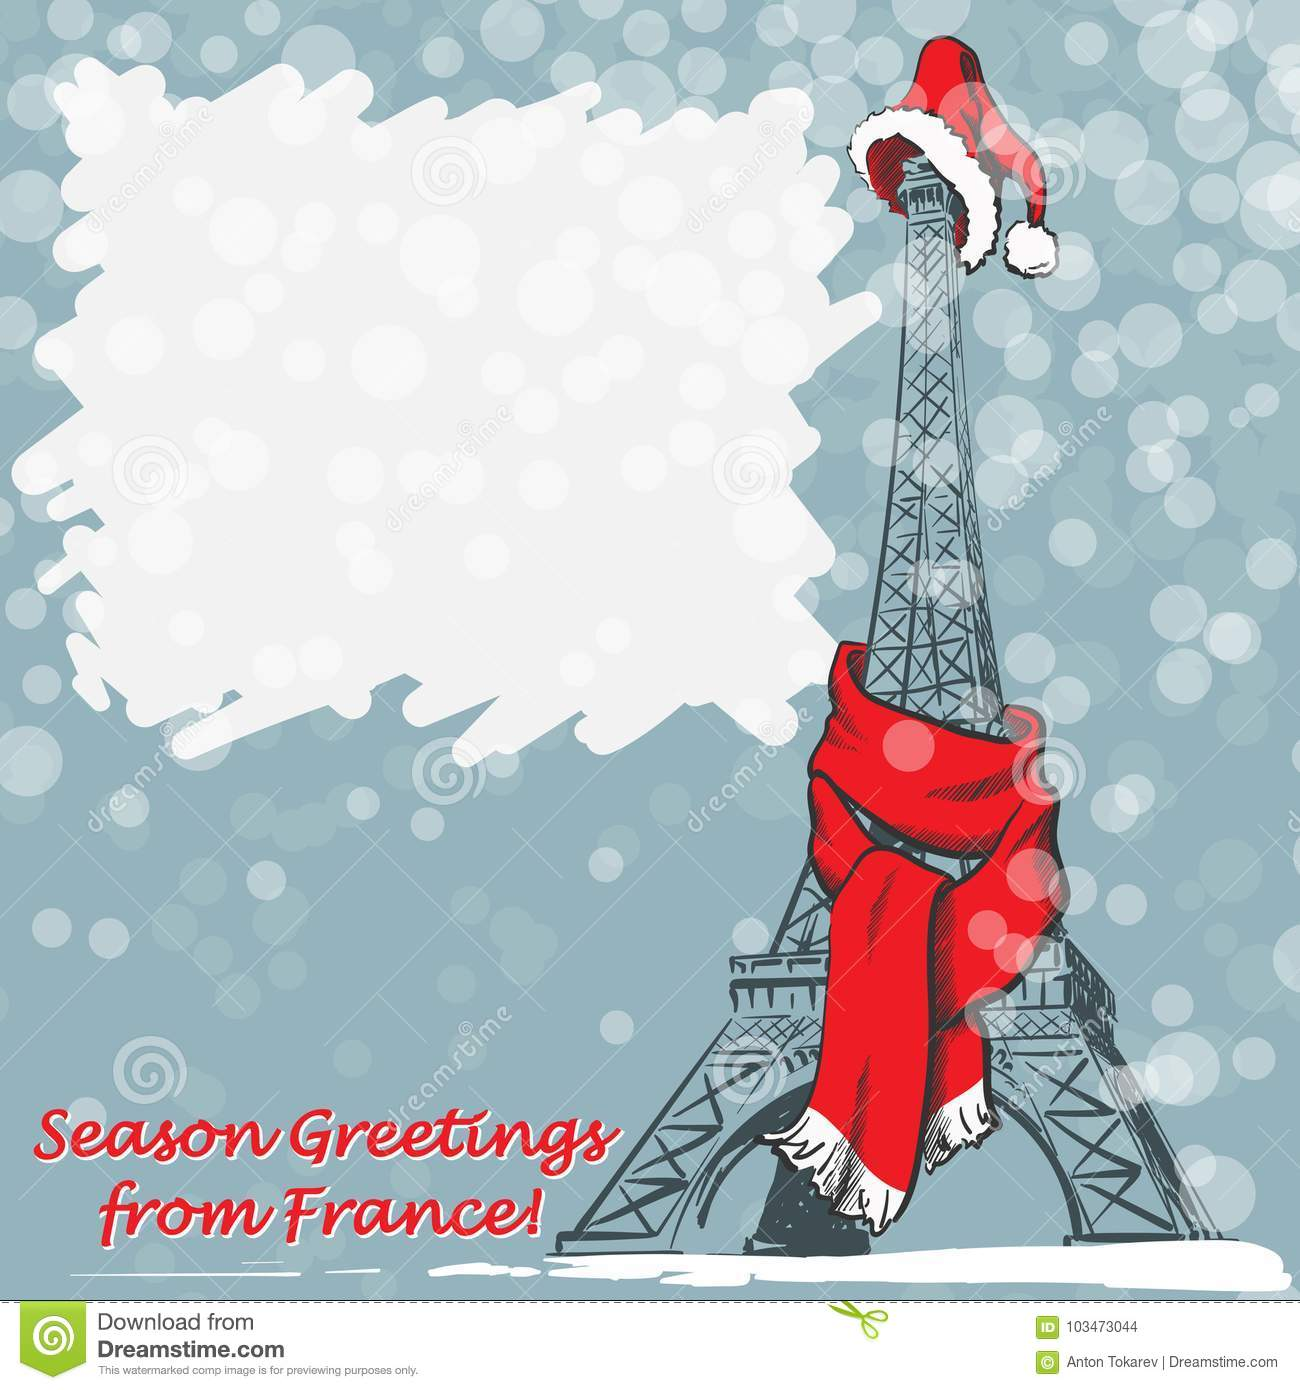 Christmas greetings from france stock vector illustration of tower download christmas greetings from france stock vector illustration of tower french 103473044 m4hsunfo